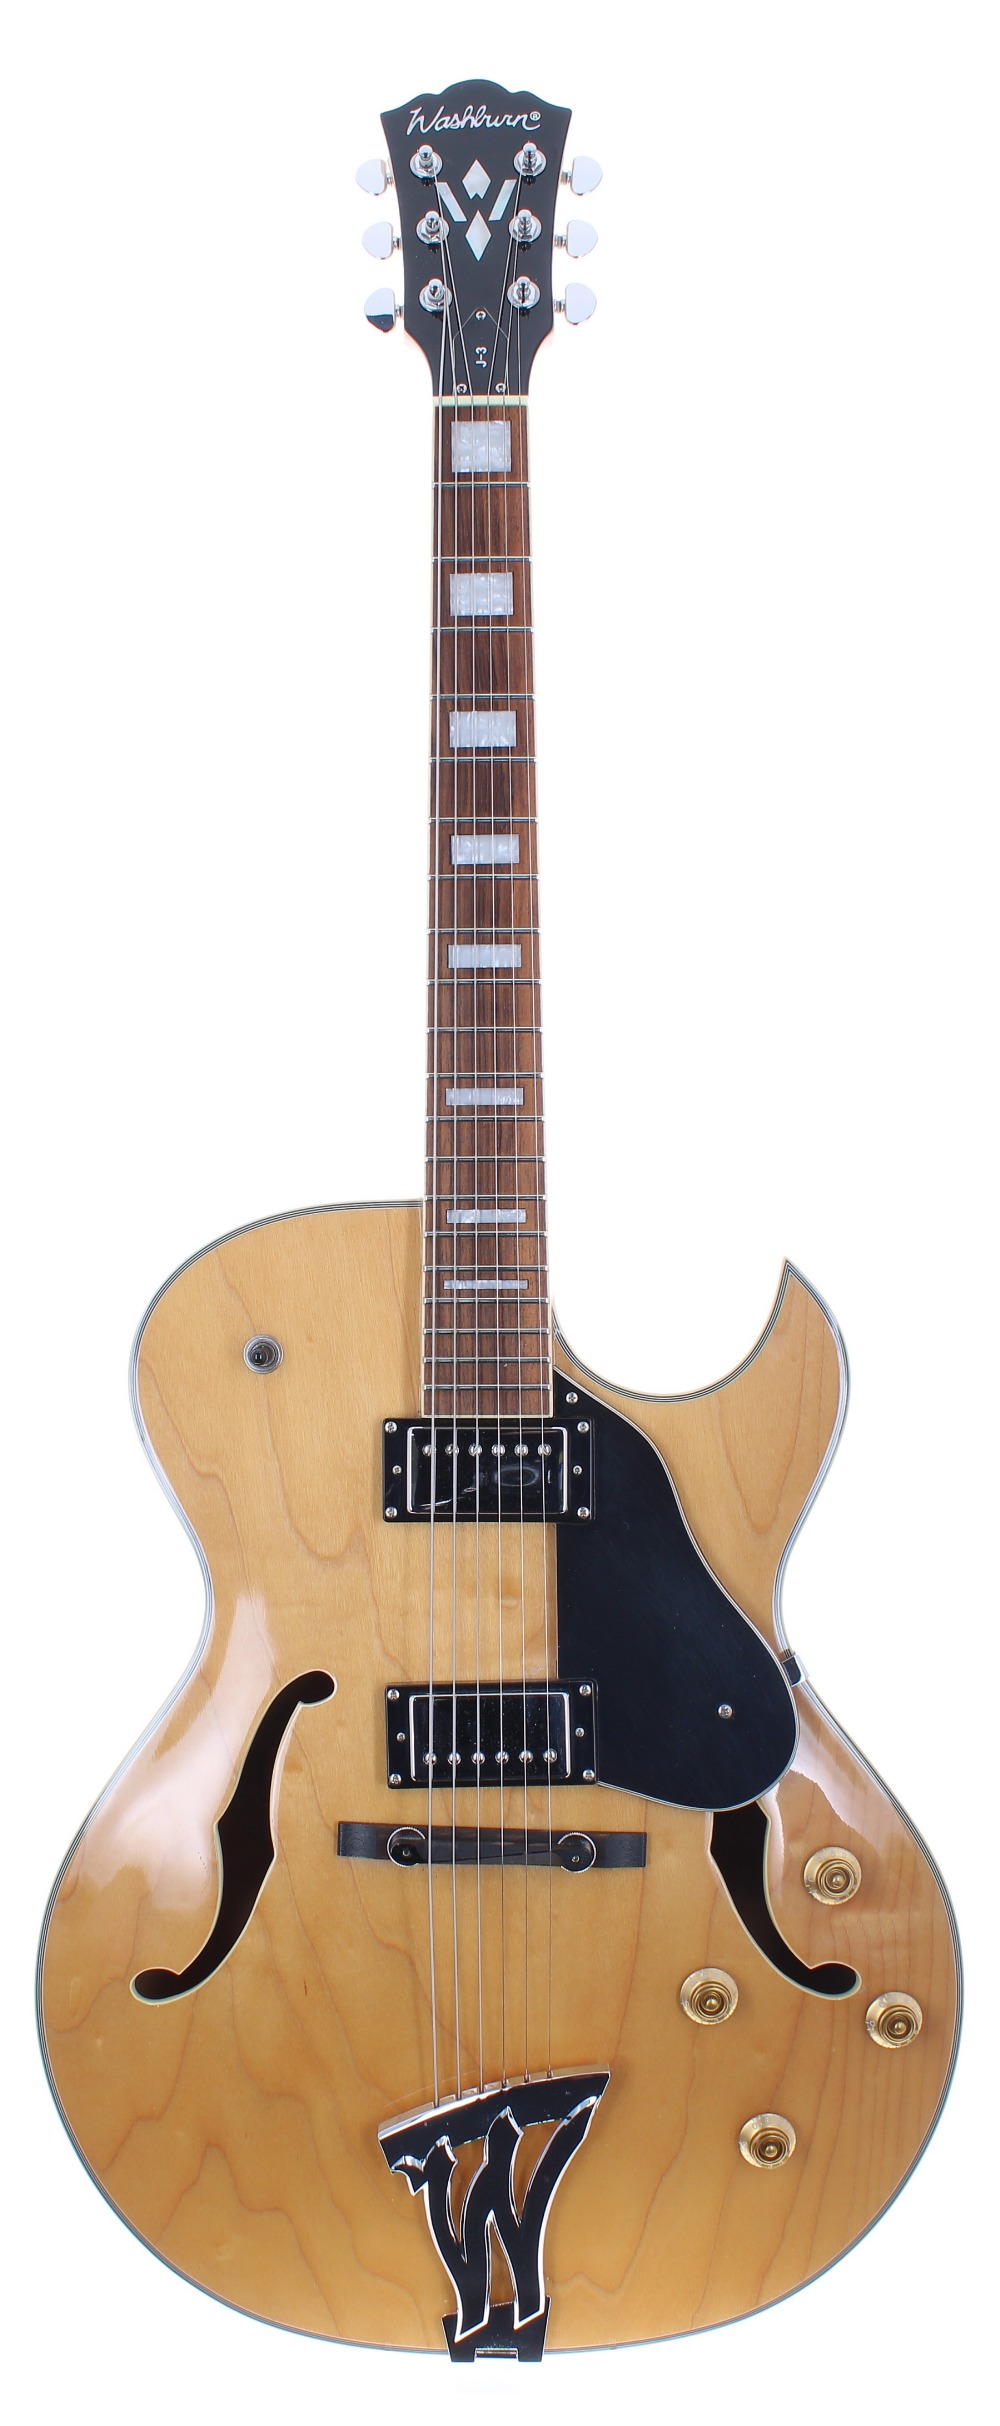 2009 Washburn J-3 hollow body electric guitar, made in China, ser.no. DC09xxxxx3; Finish: natural;